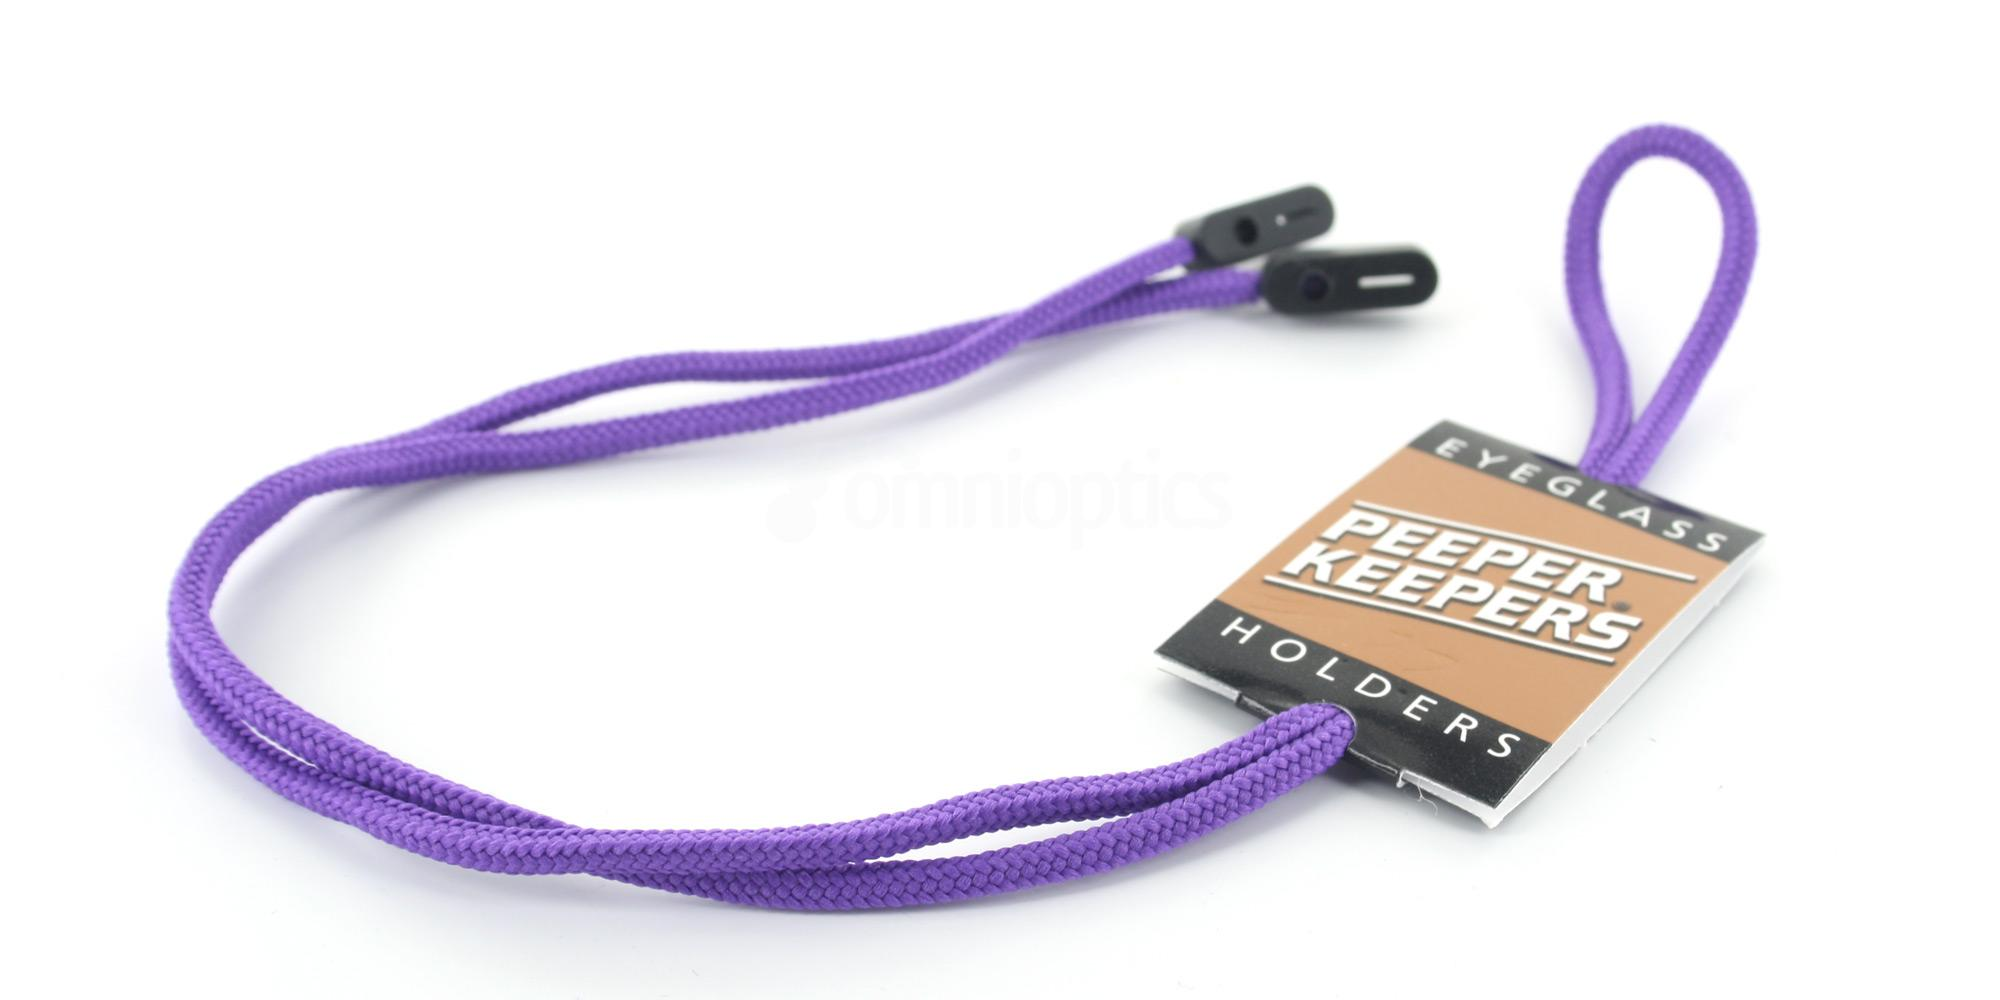 SCPR Supercord Purple Lanyard Accessories, Optical accessories